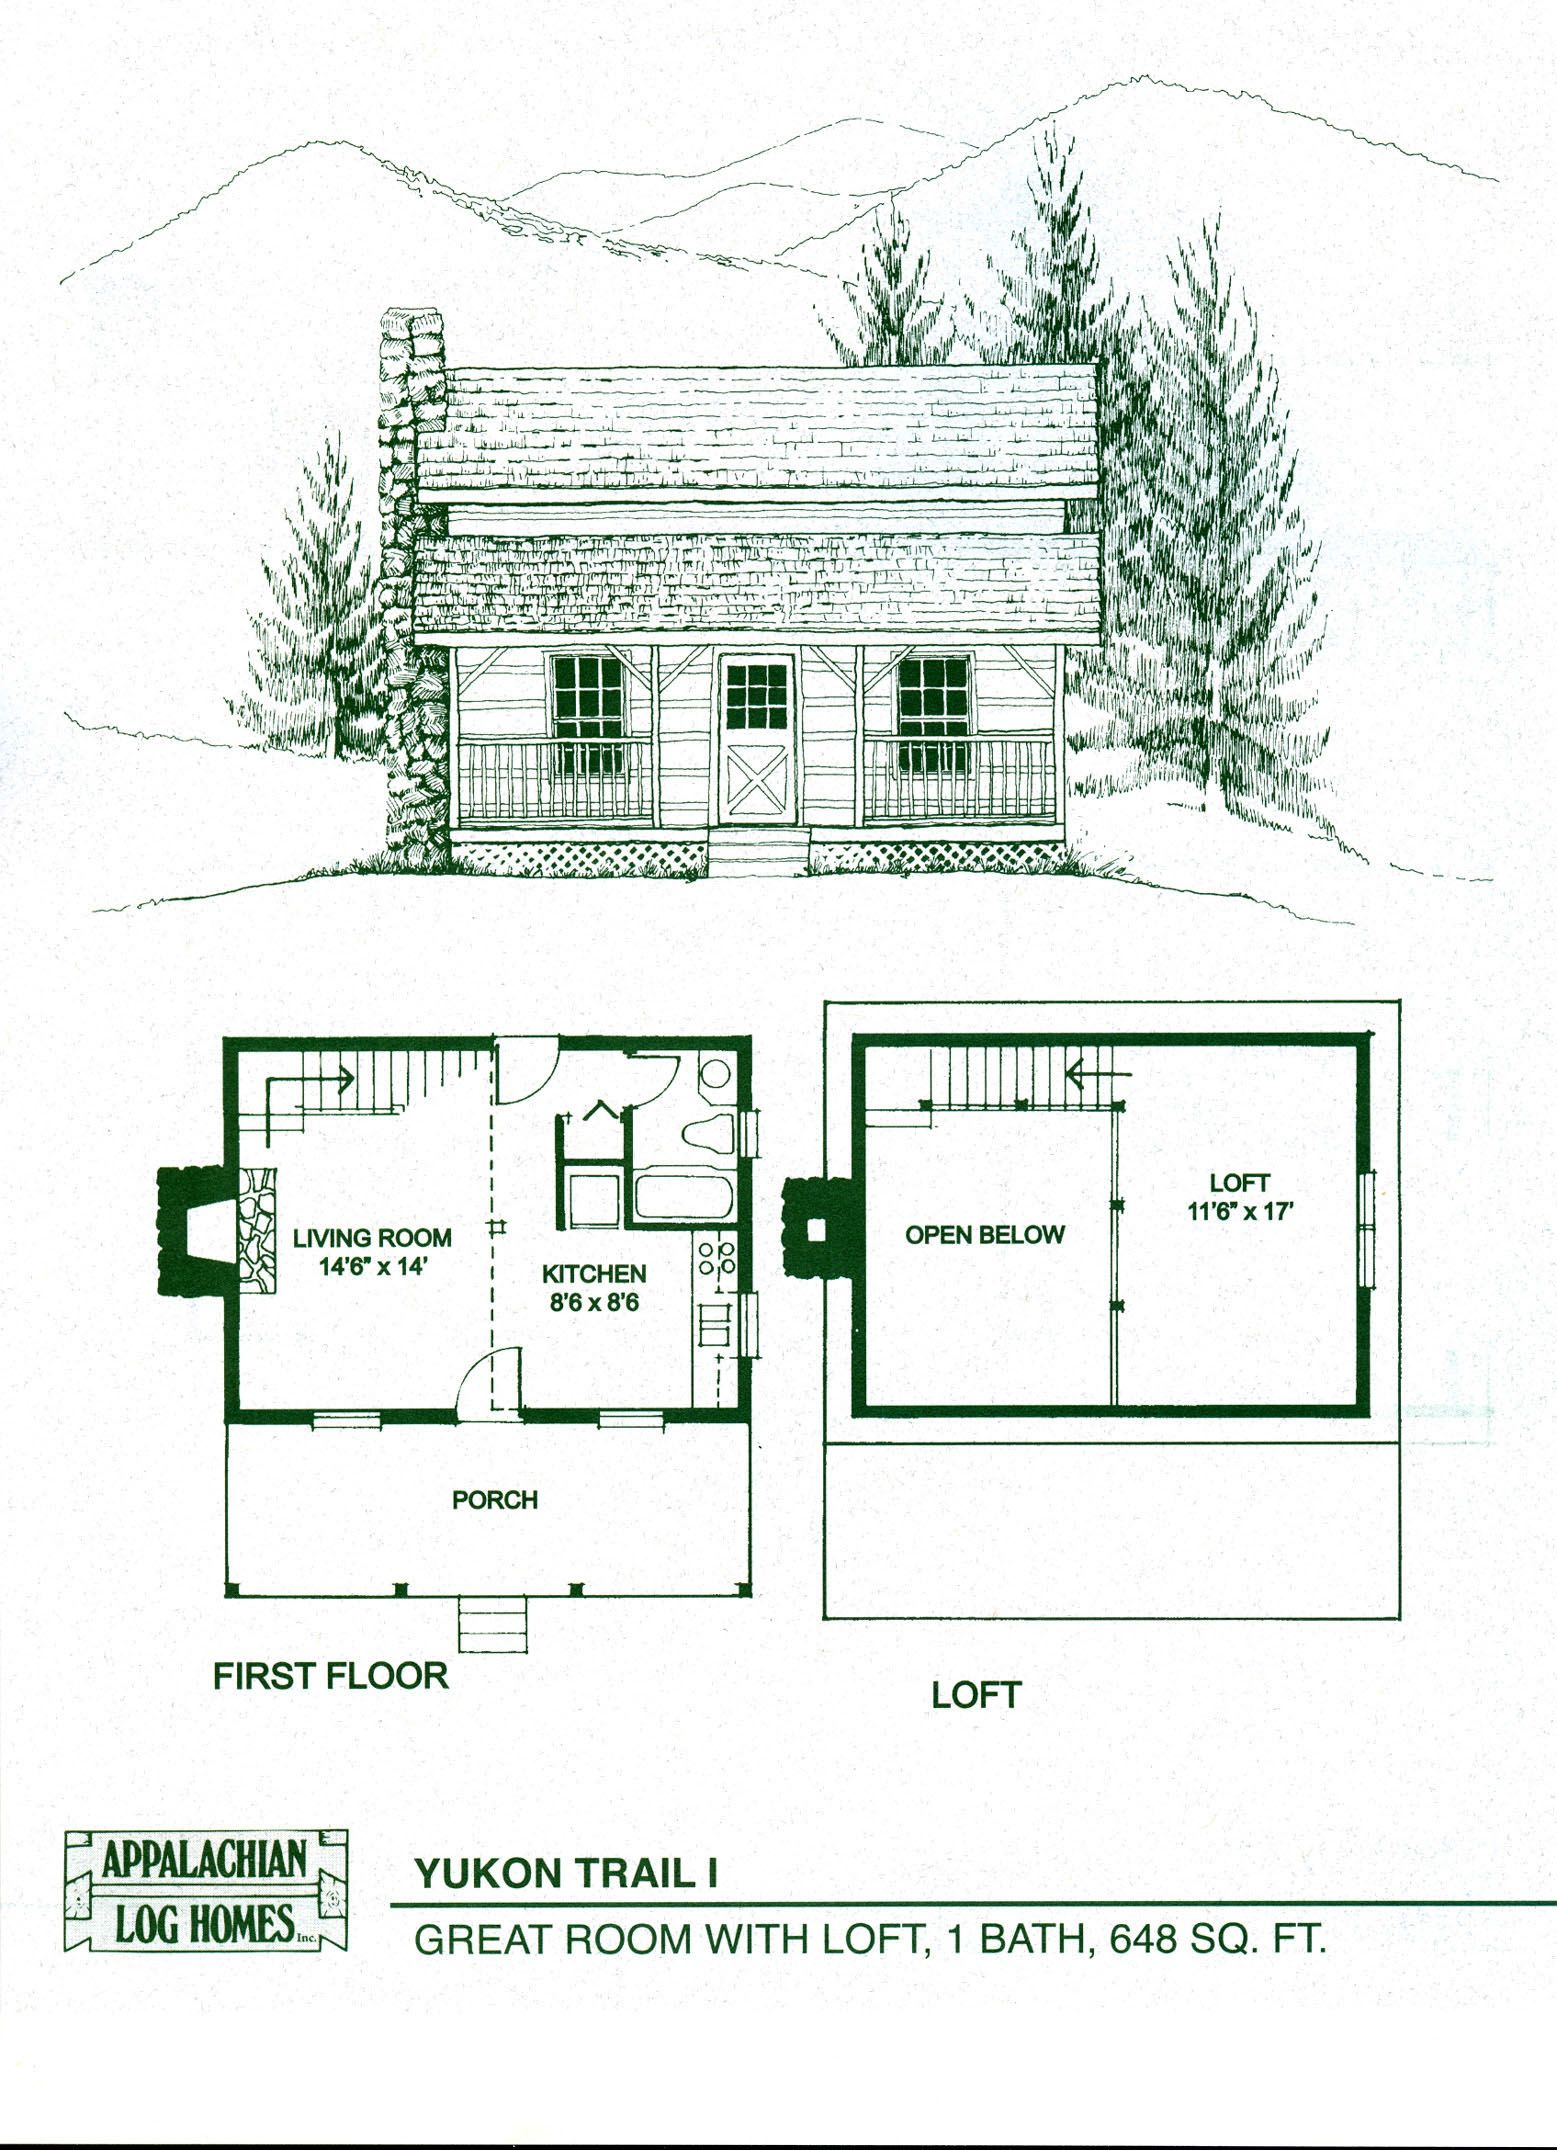 Log Home Floor Plans Log Cabin Kits Appalachian Log For Cottage Floor Plans